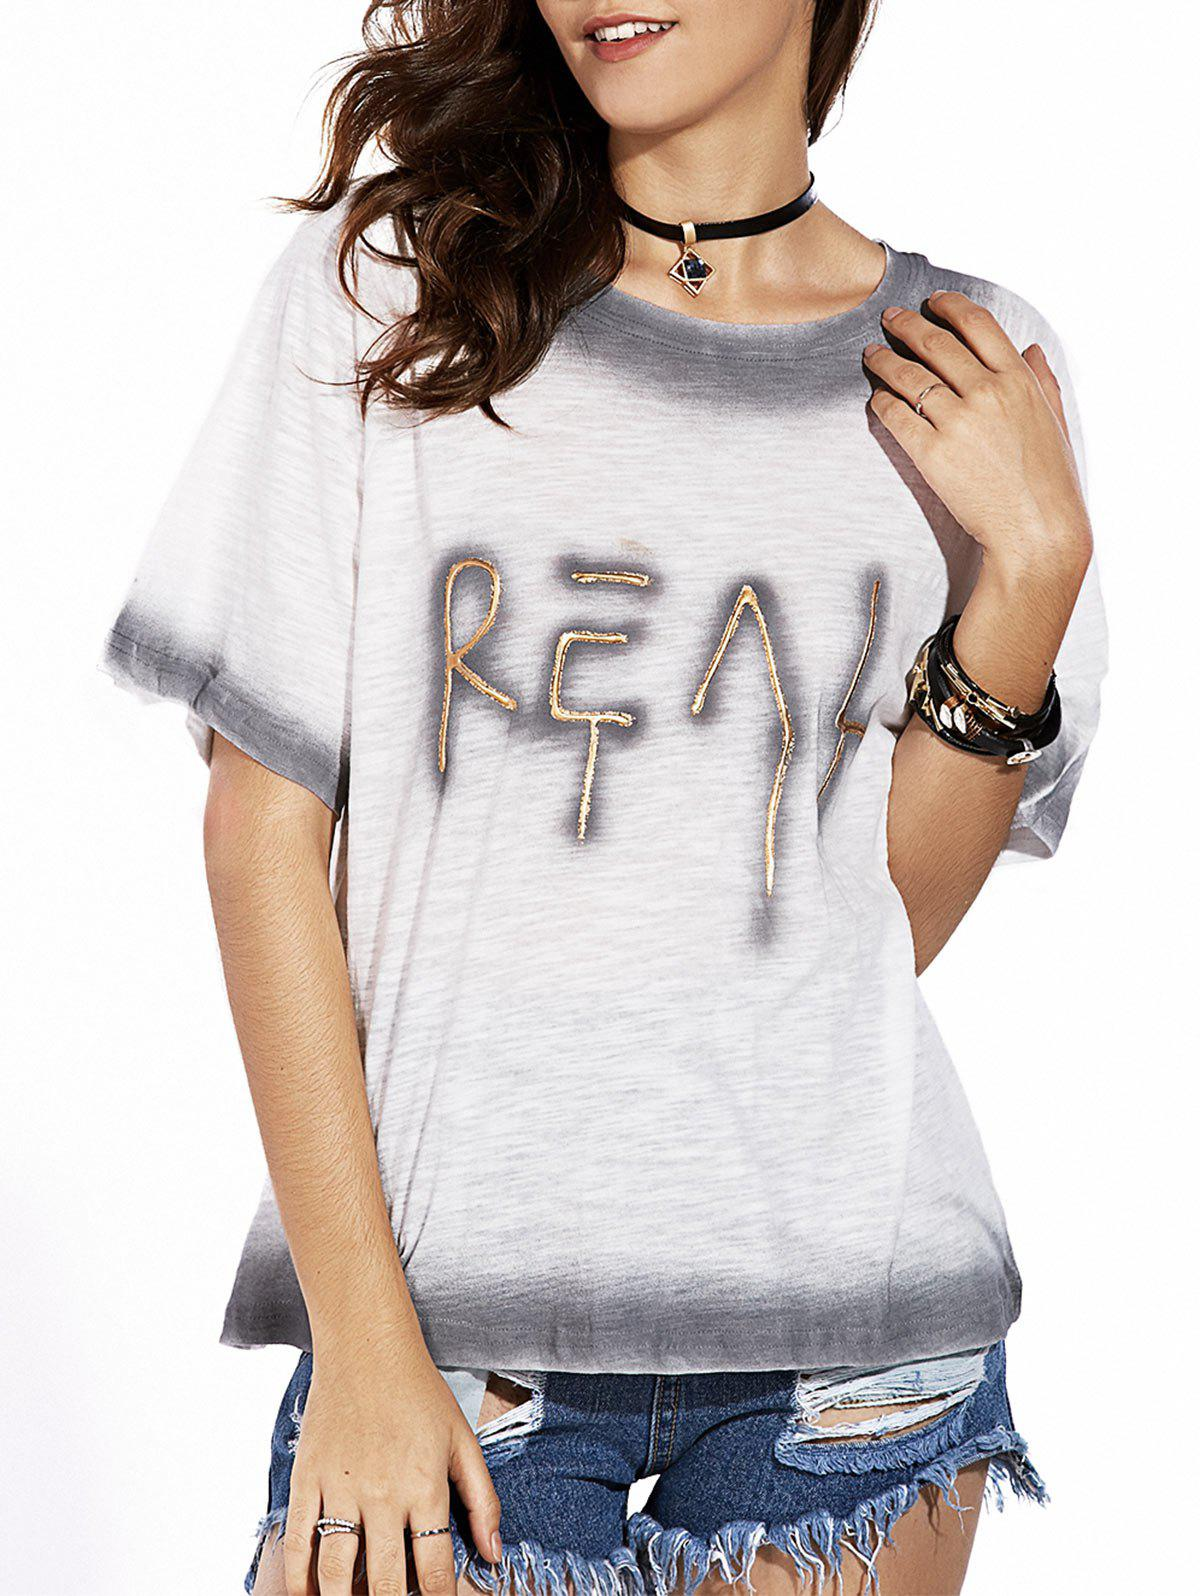 Chic Round Collar Loose-Fitting Letter Pattern Women's T-Shirt - WHITE ONE SIZE(FIT SIZE XS TO M)